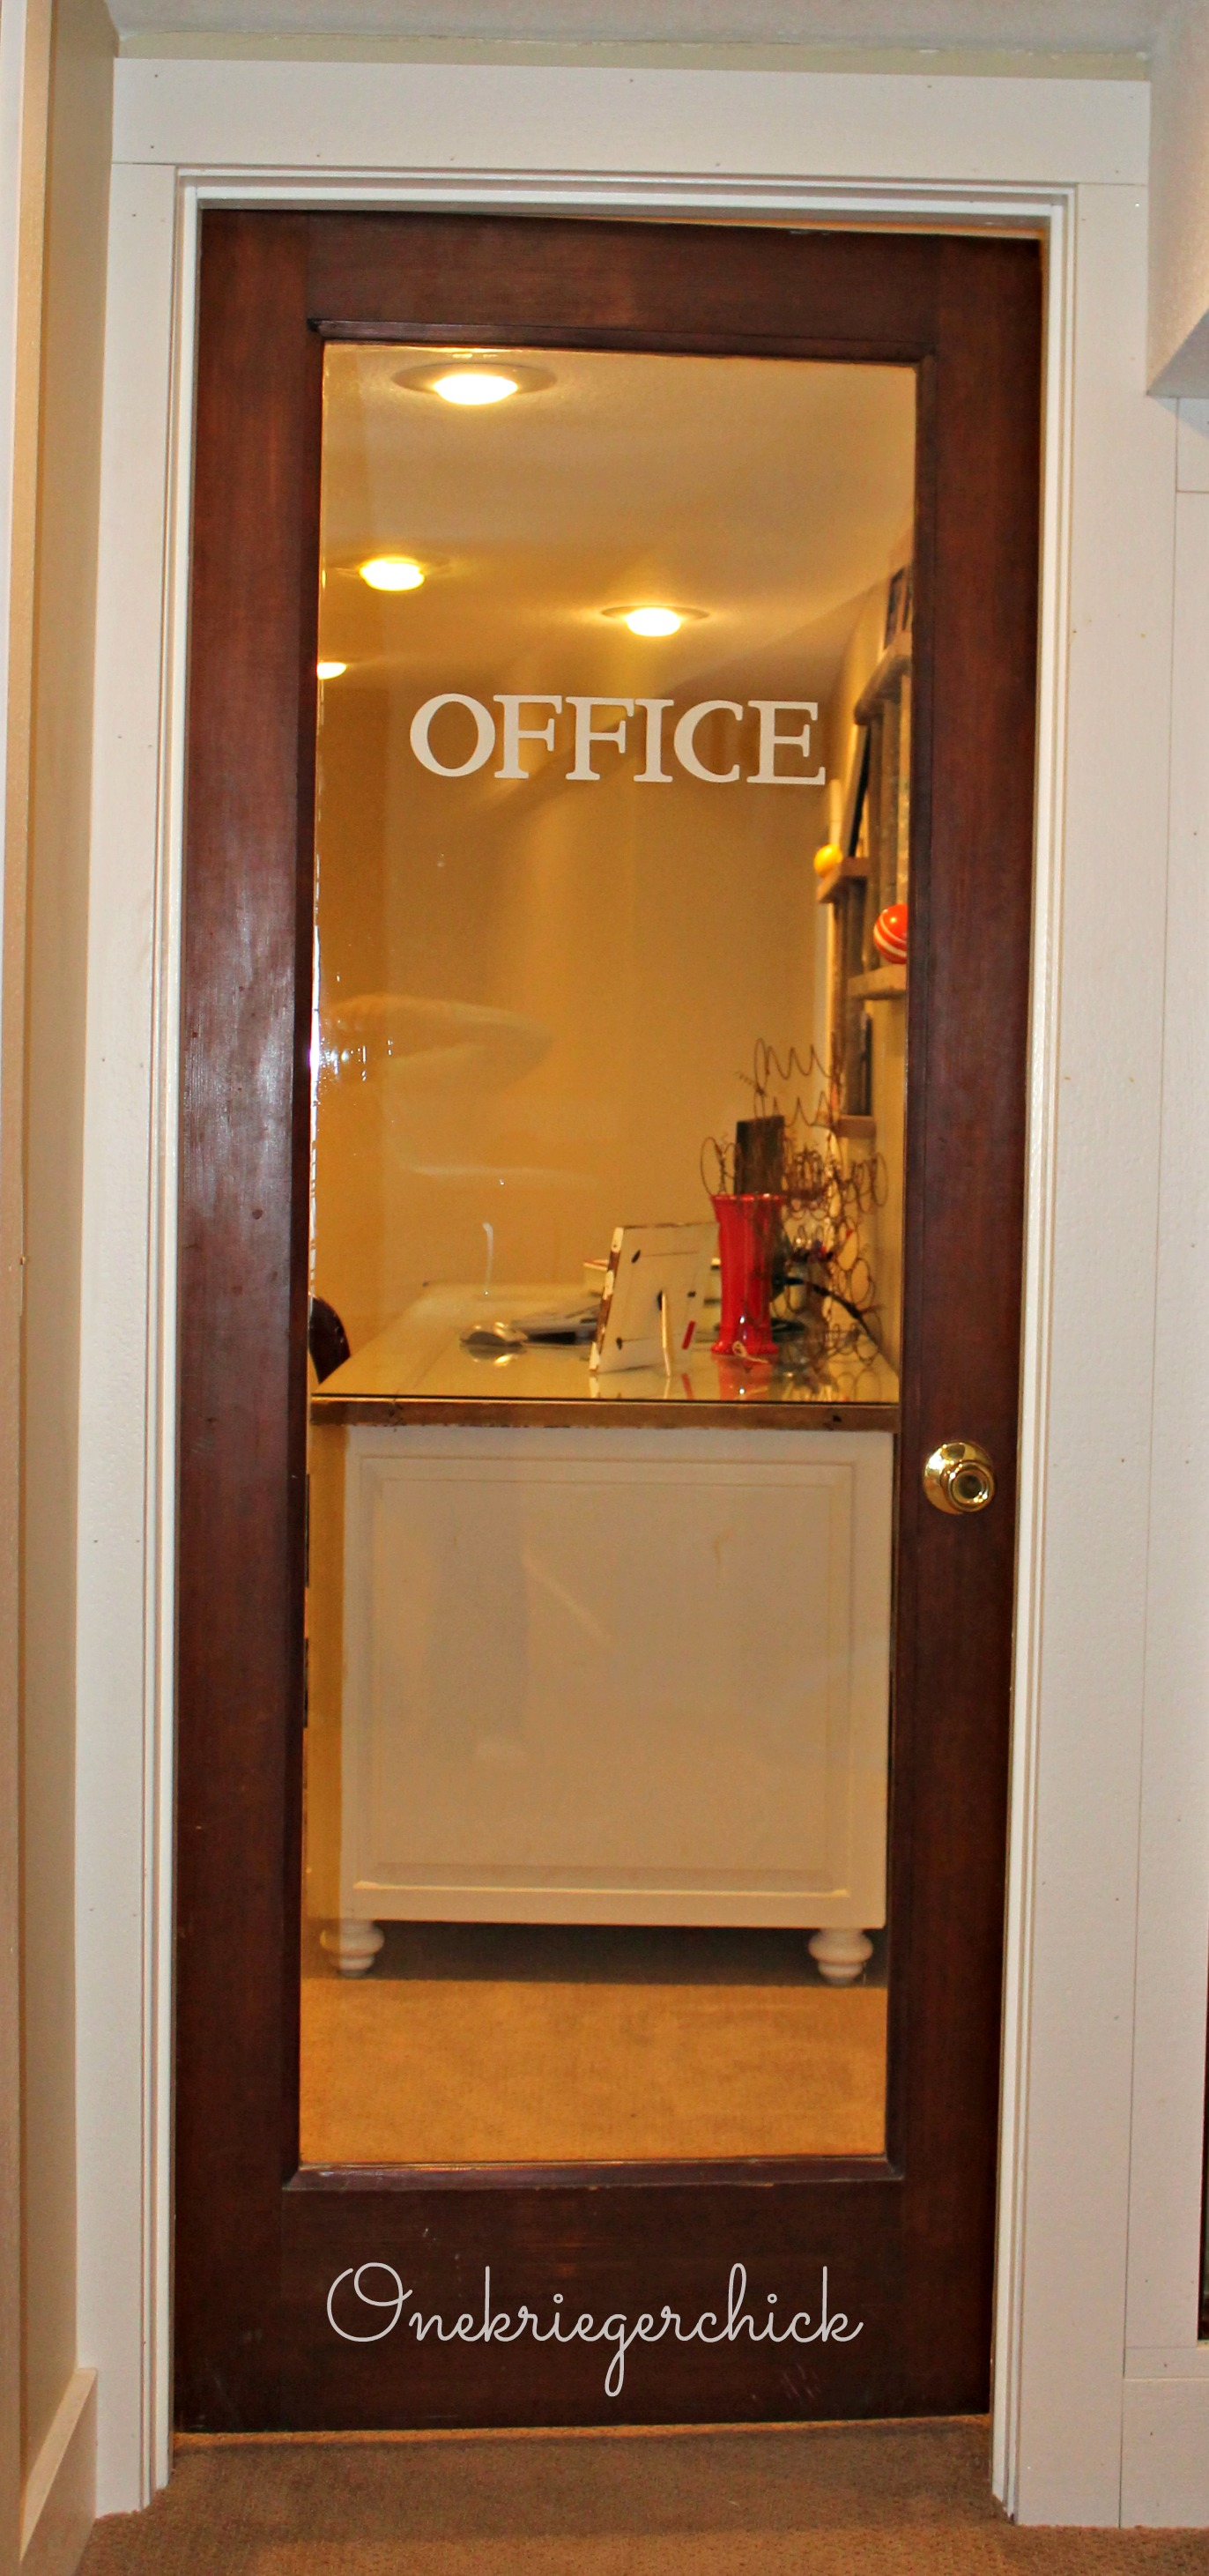 glass door for office. Glass Door For Office